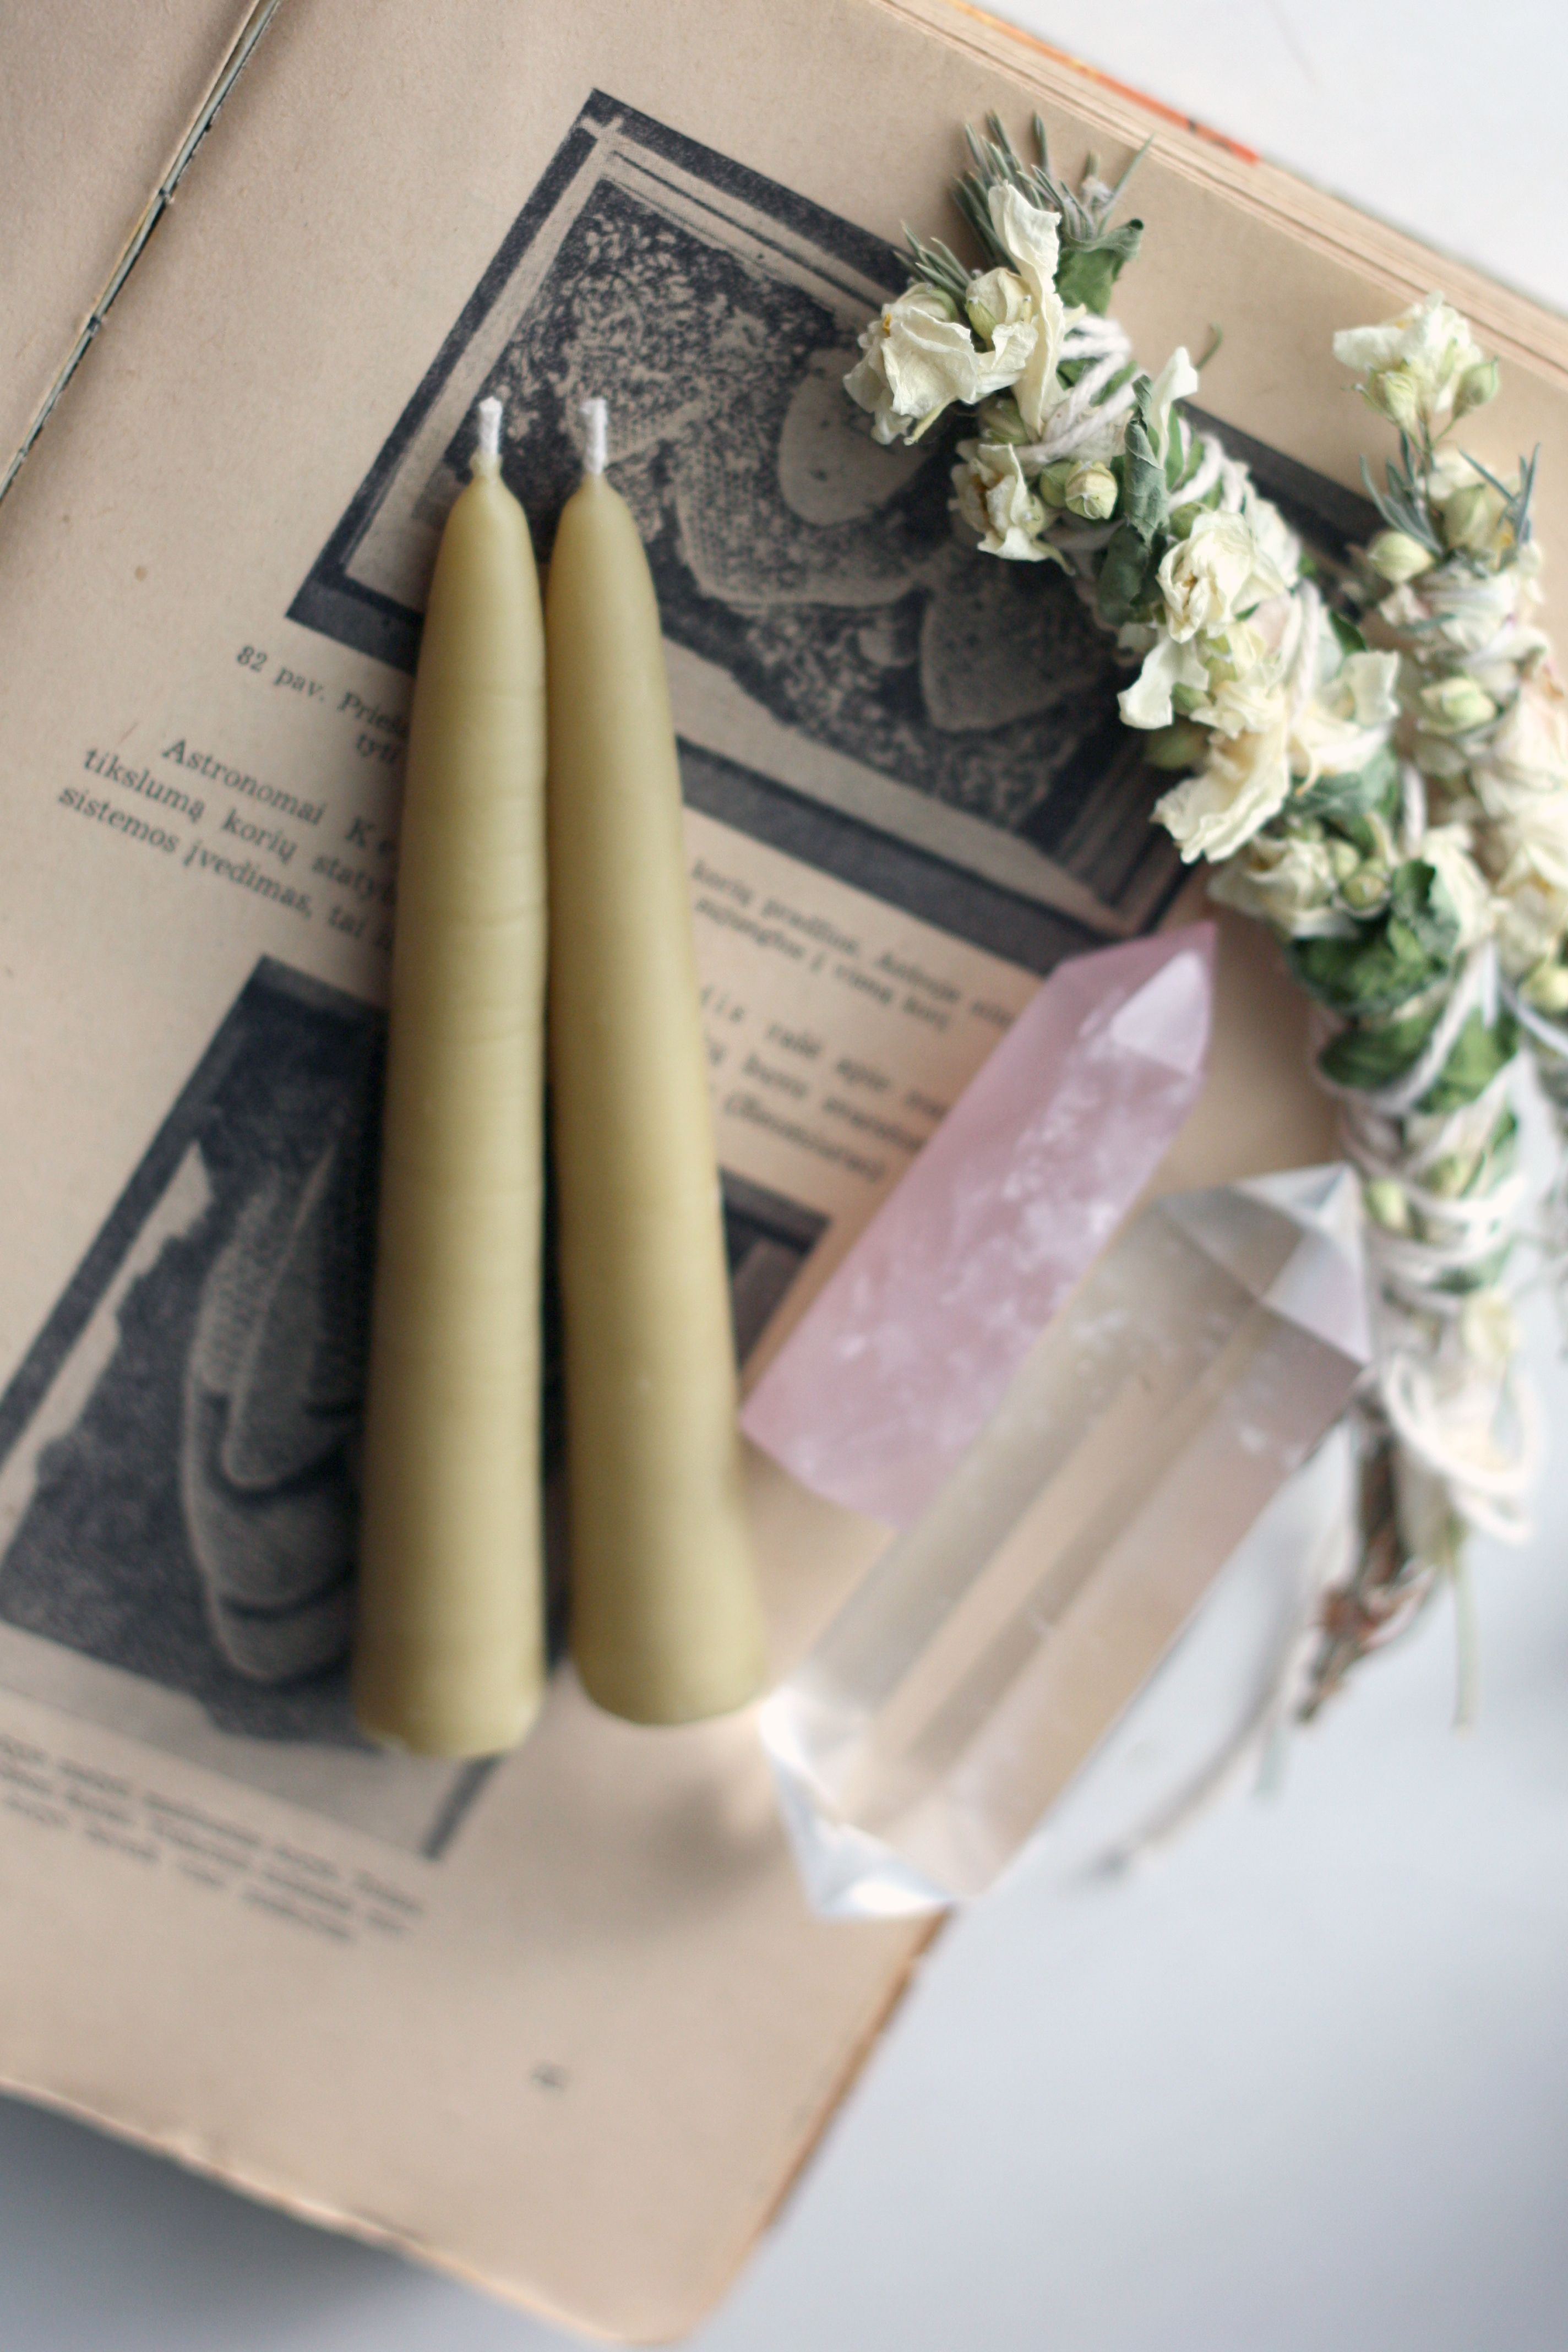 Beeswax candles natural bee wax tapers taper candles hand dipped